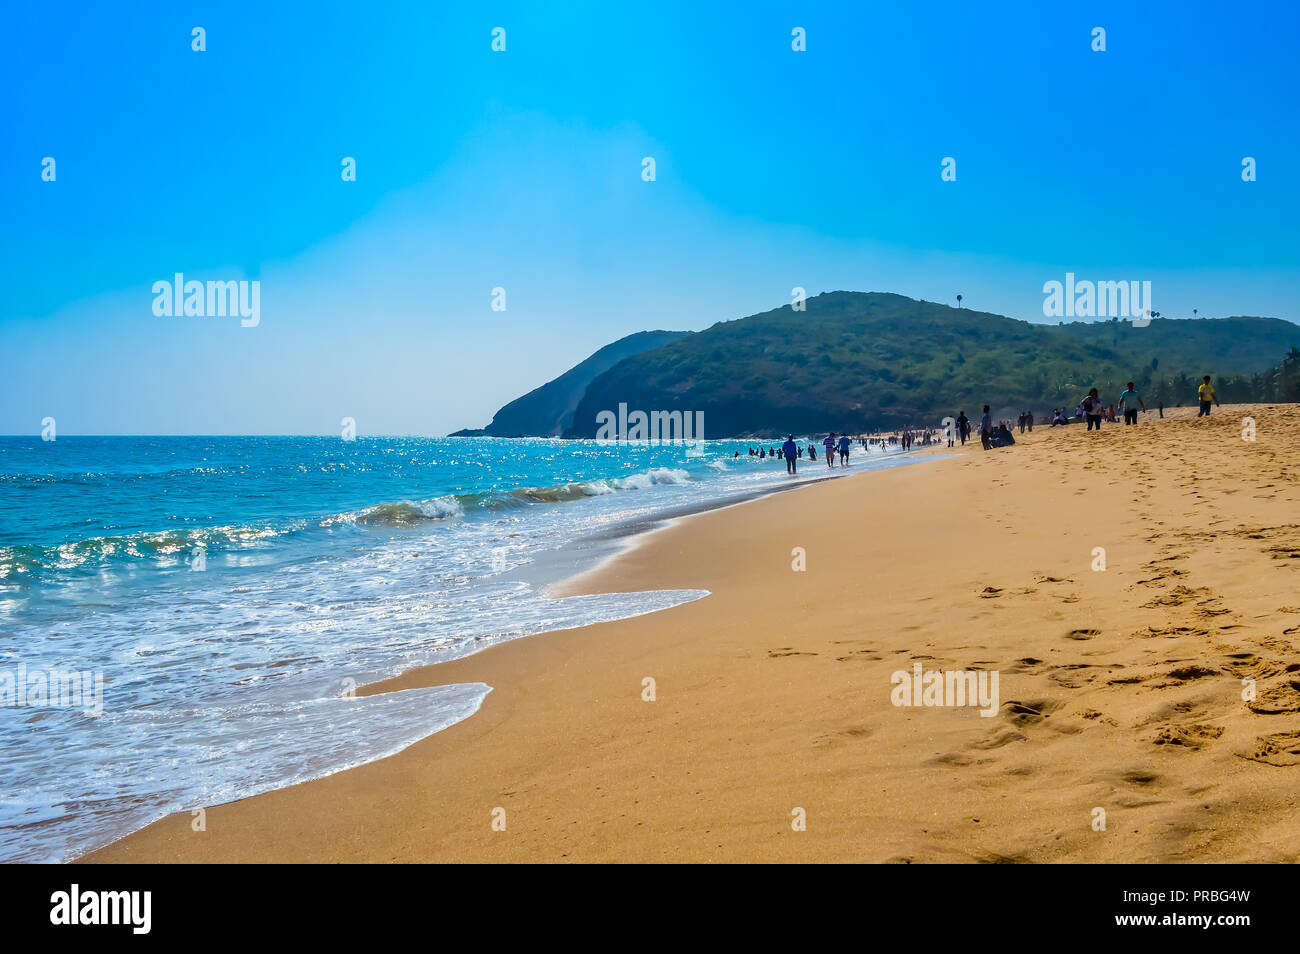 photograph of goa sea beach taken in christmas holiday during new year celebration in landscape style use for background screen saver e cards website